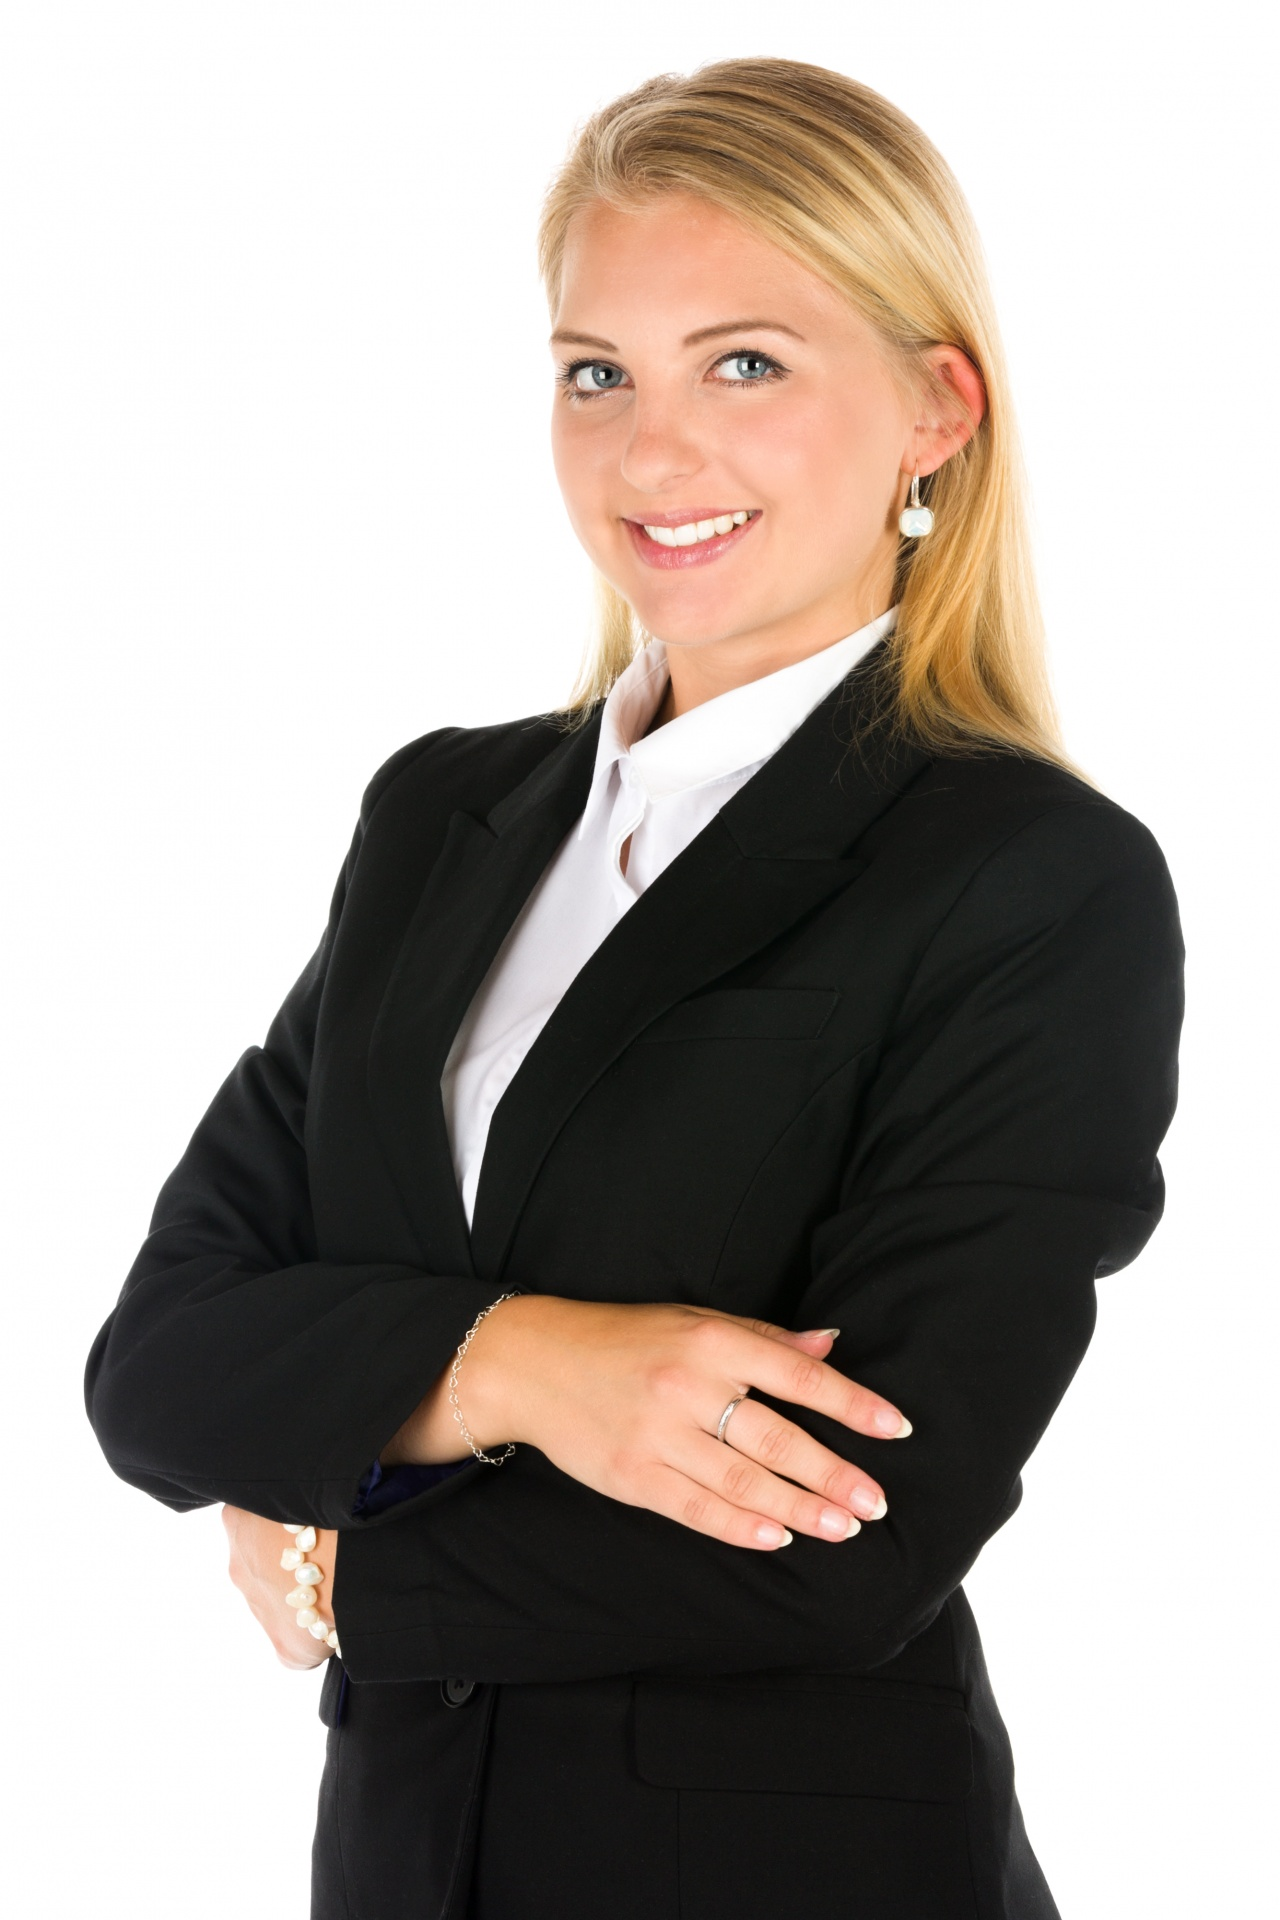 Image result for business woman free stock photos